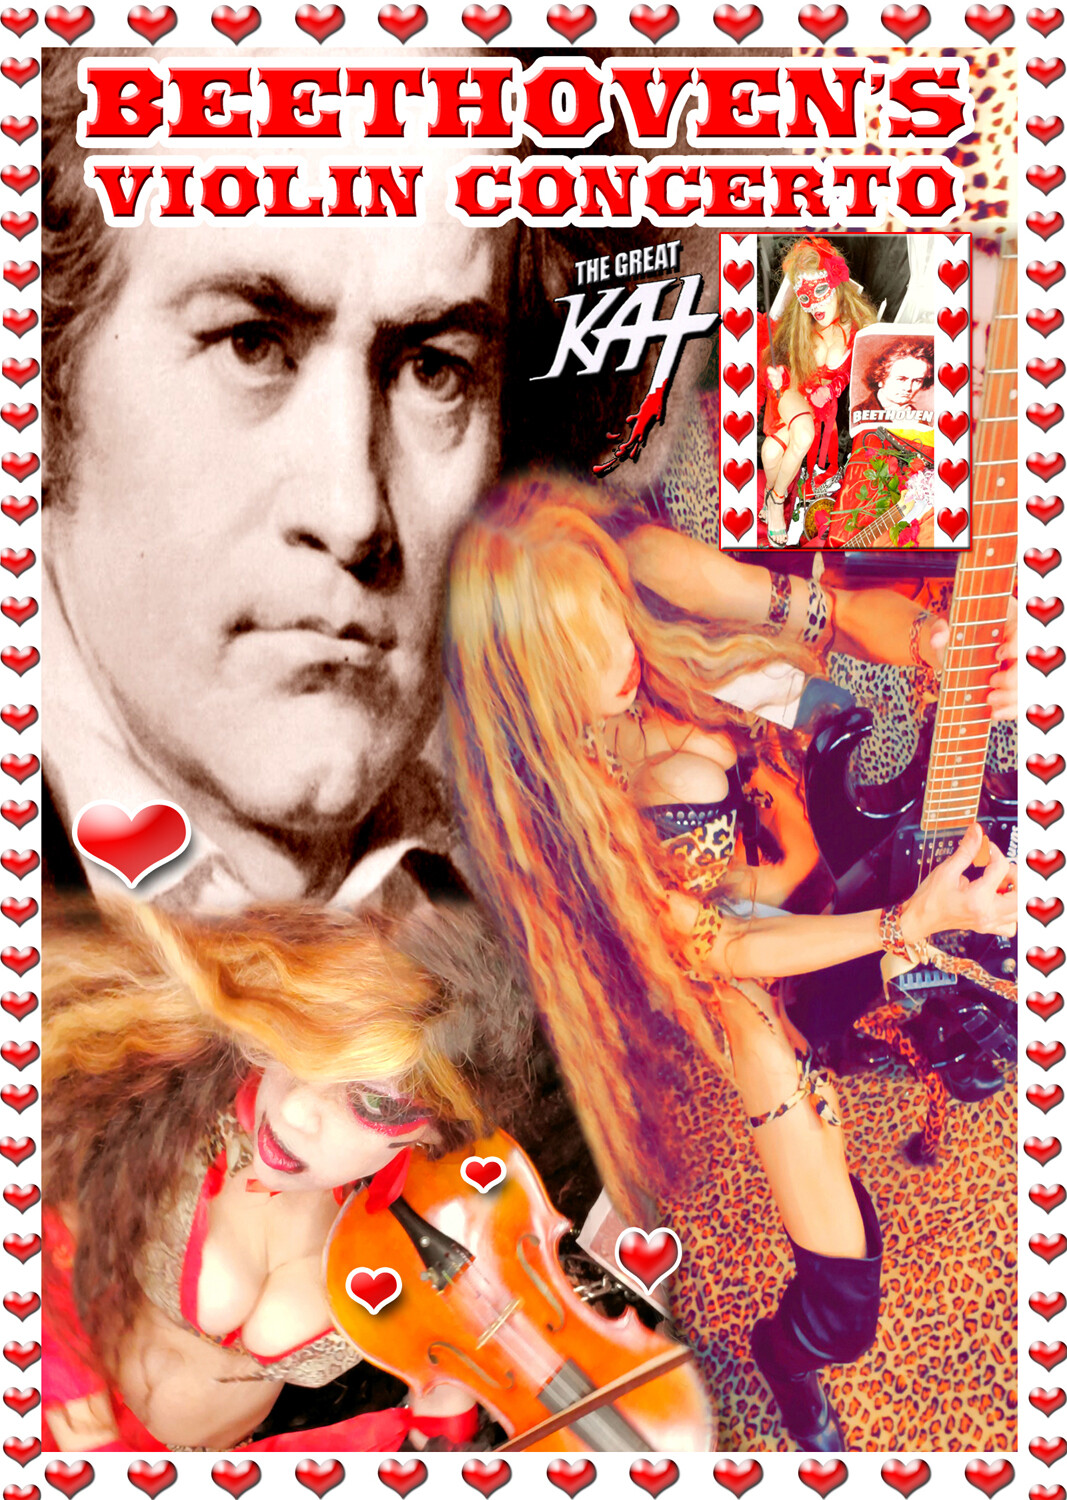 """NEW BEETHOVEN'S """"VIOLIN CONCERTO"""" MUSIC VIDEO for Guitar & Violin DVD SINGLE (1:30)!! PERSONALIZED AUTOGRAPHED by THE GREAT KAT! (Signed to Customer's Name) HAPPY 250th BIRTHDAY BEETHOVEN!"""